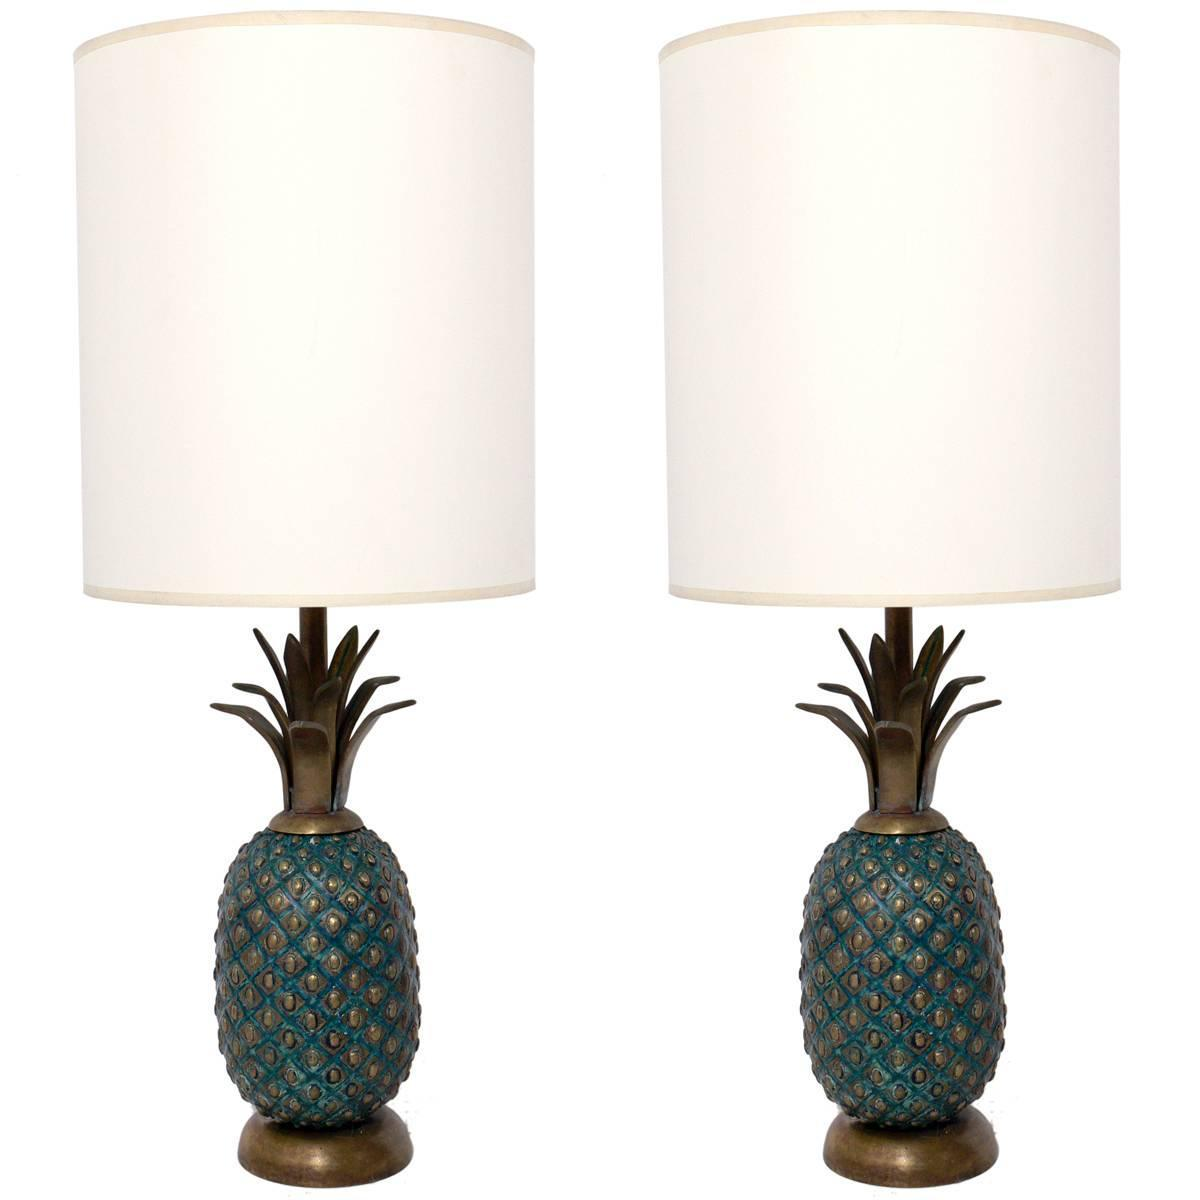 Bronze Pineapple Lamps By Pepe Mendoza At 1stdibs